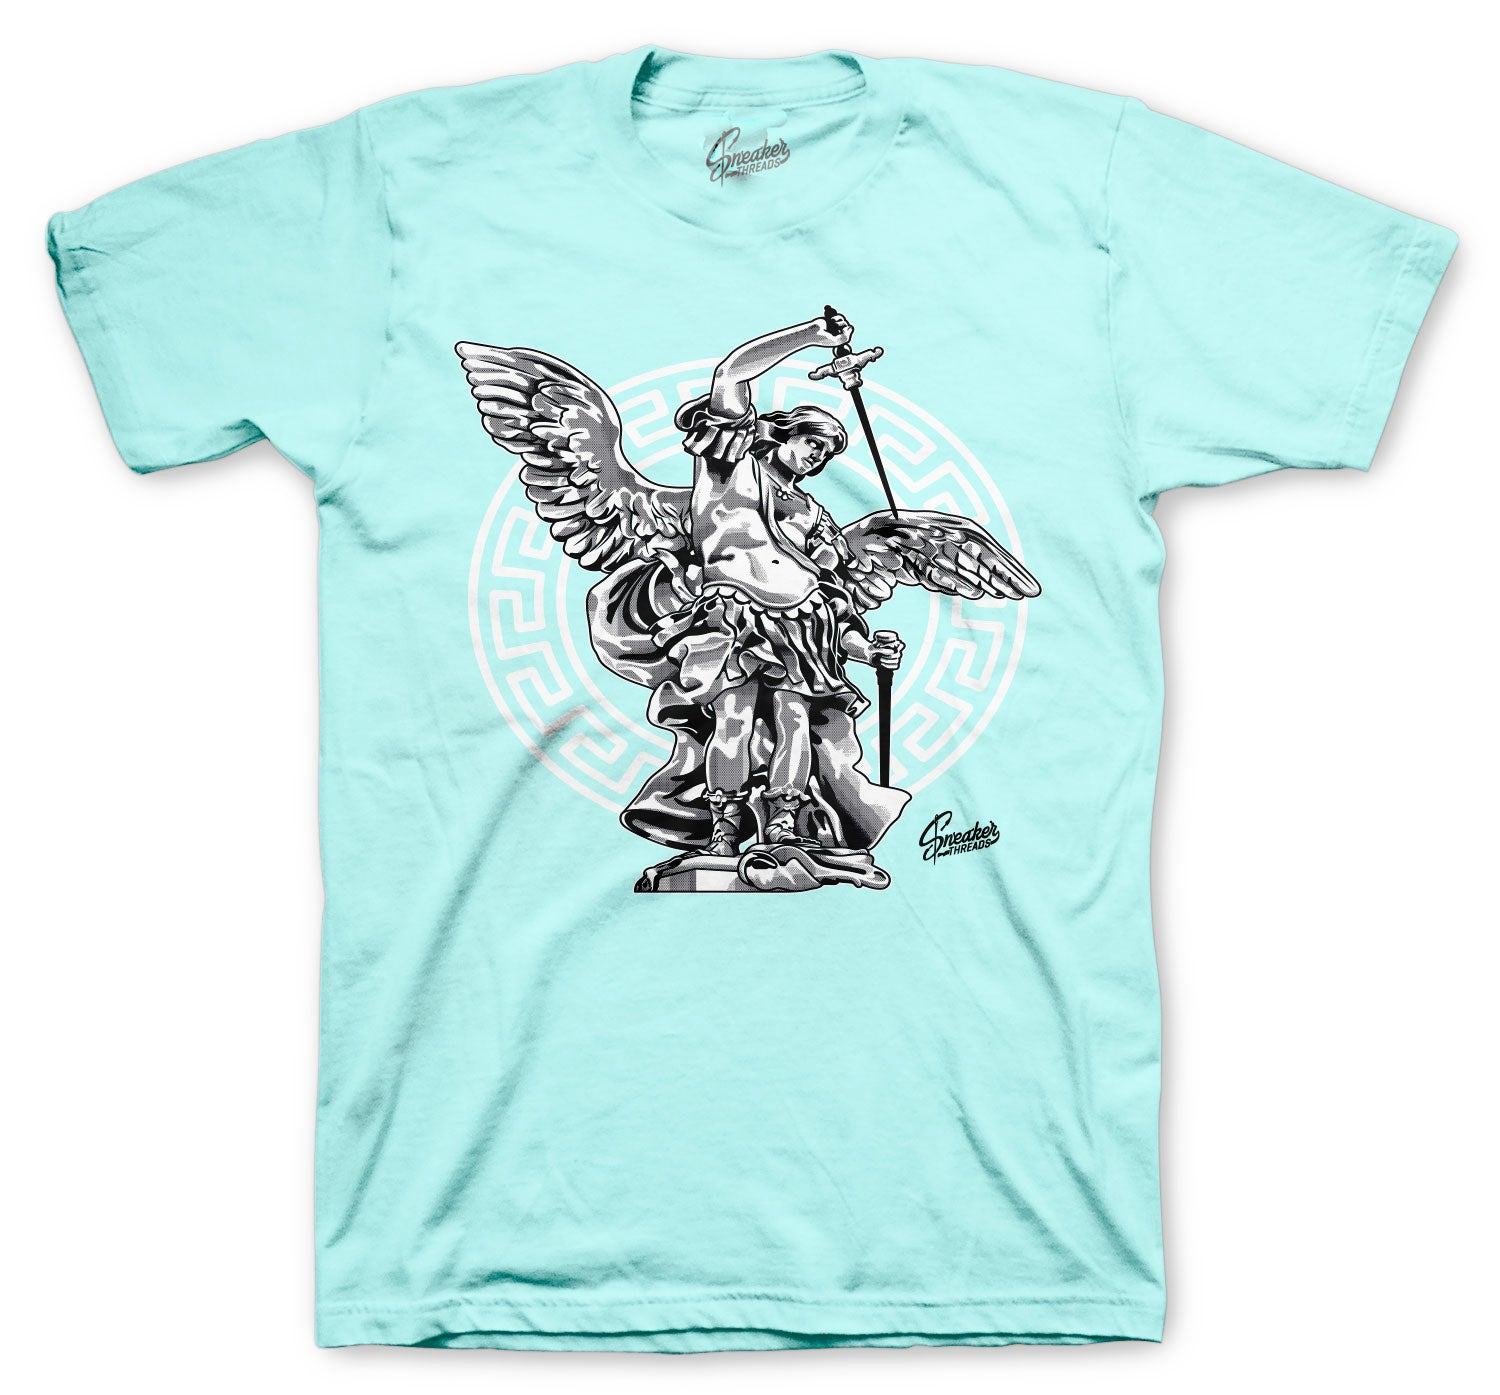 Jordan 12 Easter Shirt - St. Michael - Green